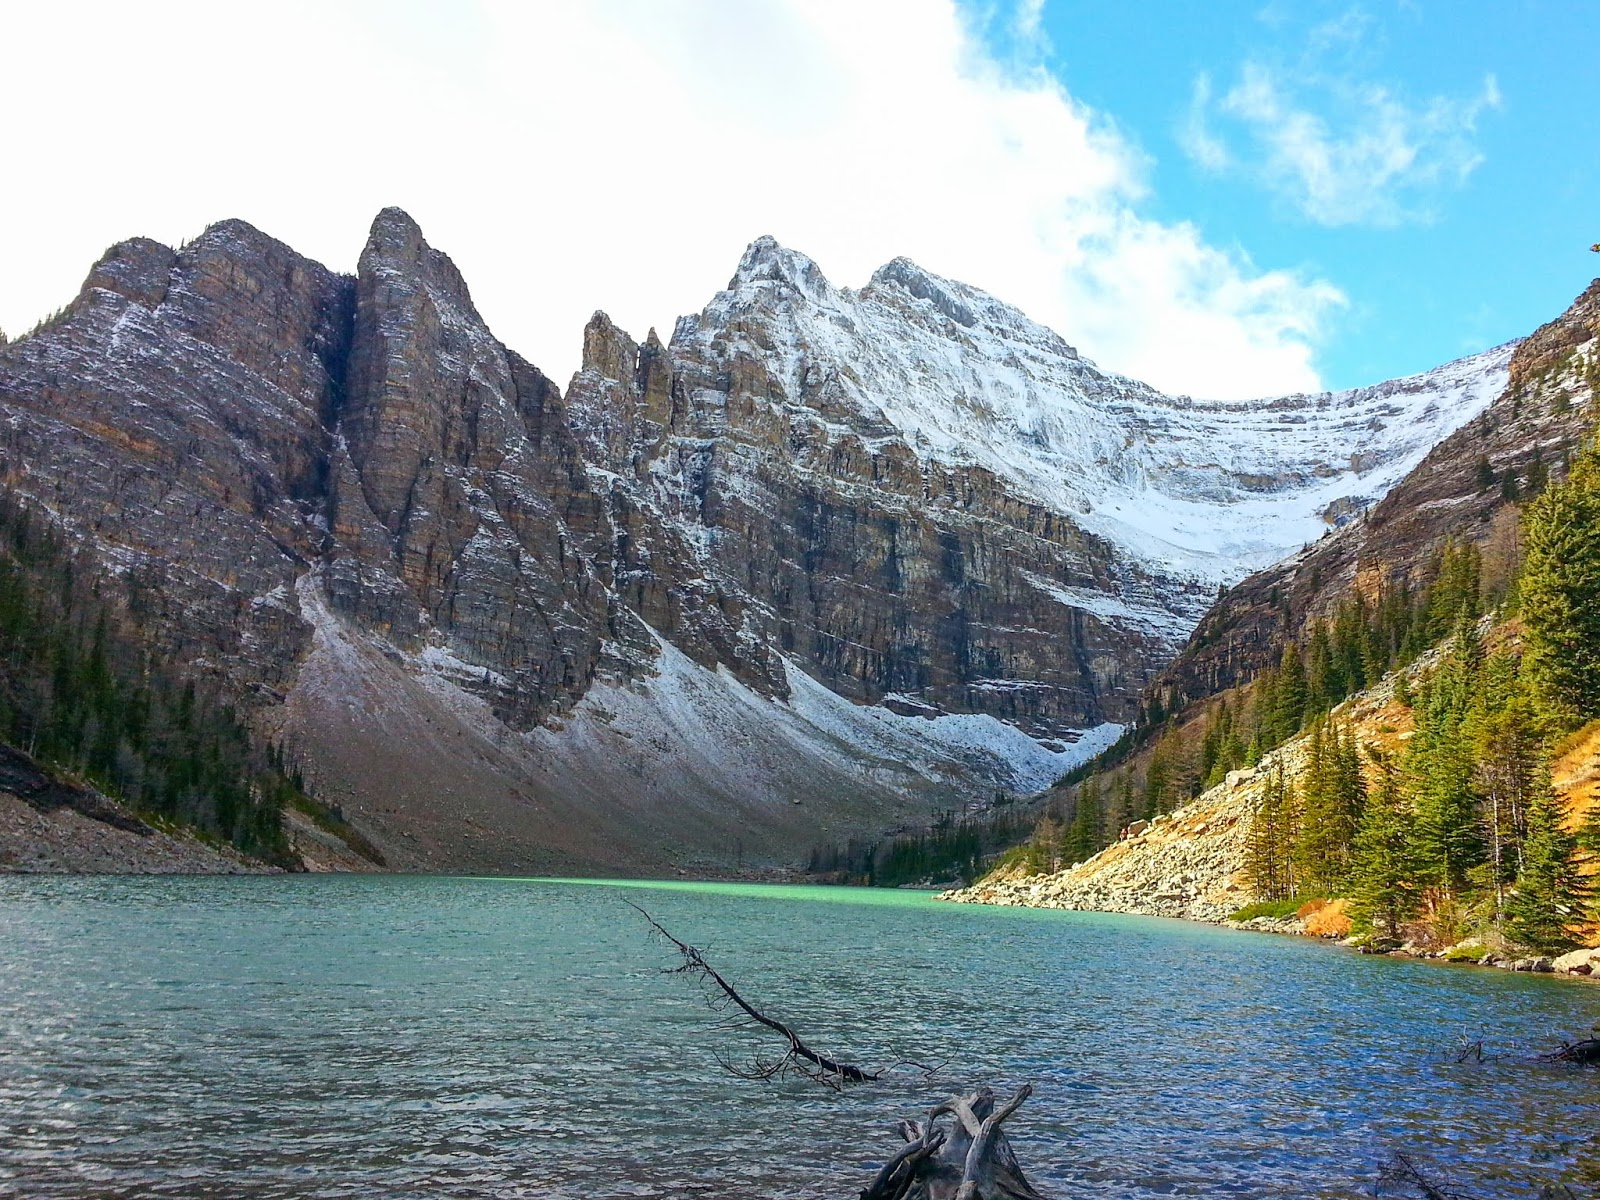 Lake Agnes, Banff National Park